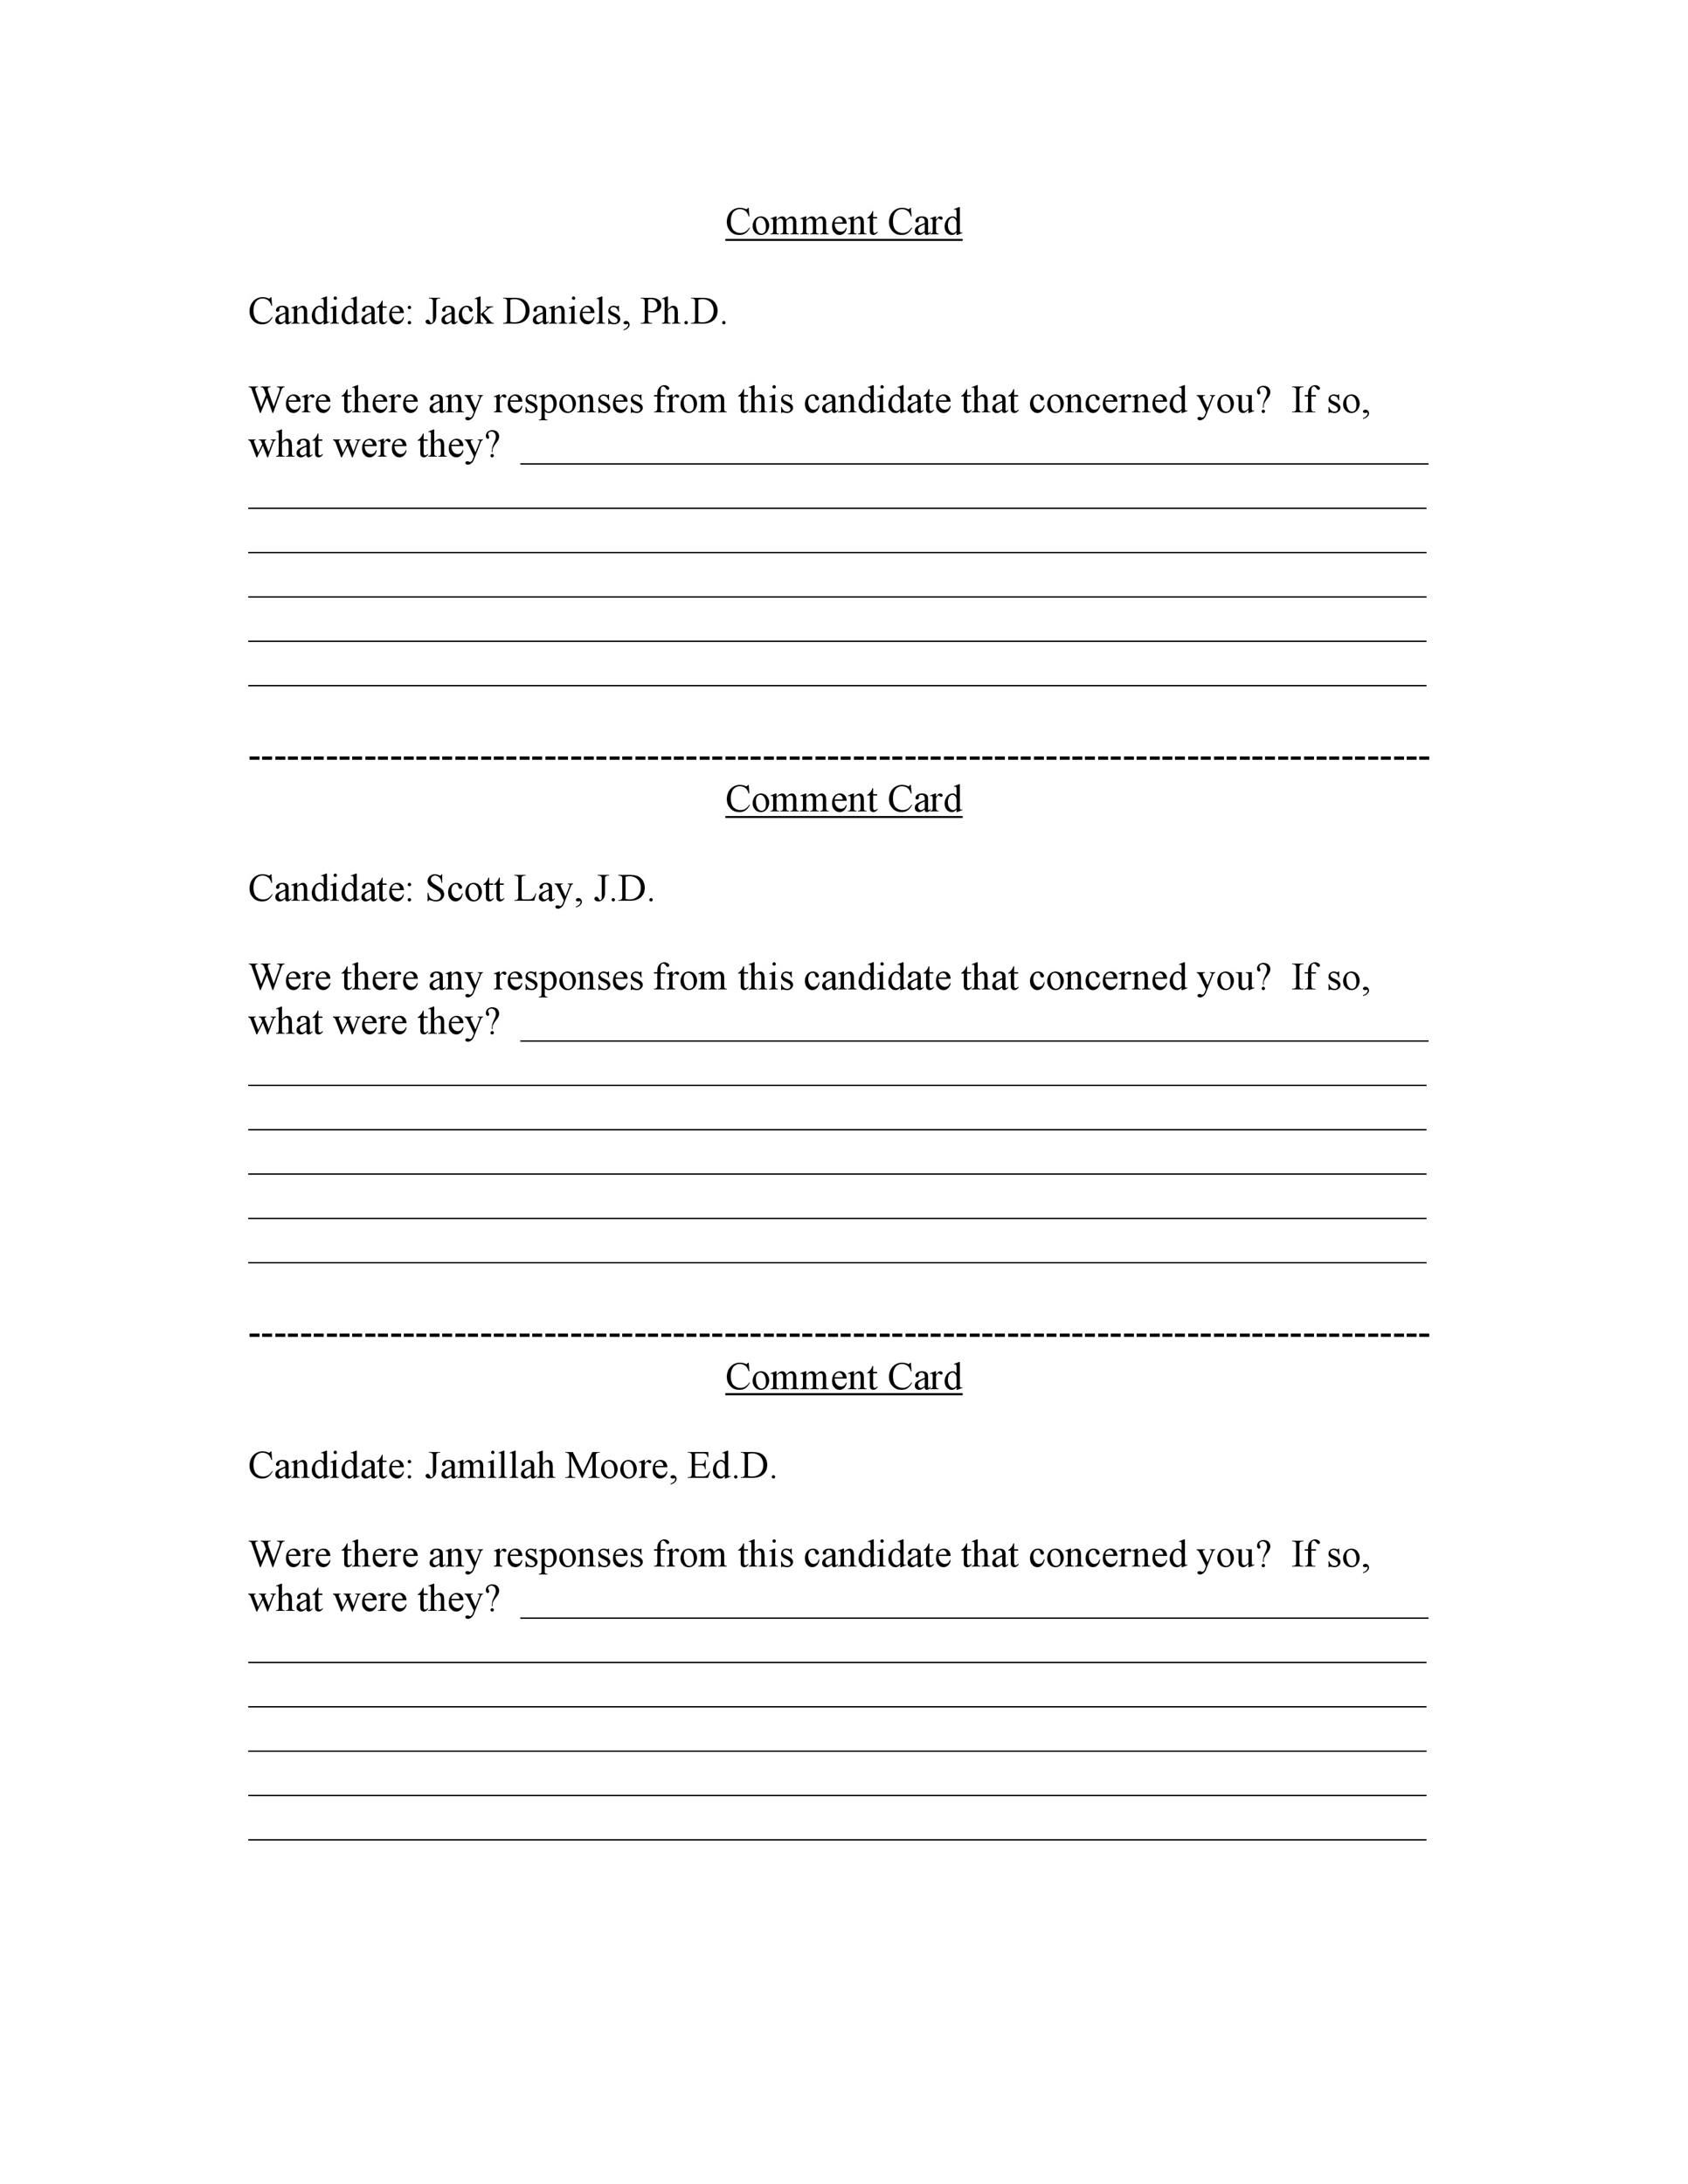 006 Impressive Restaurant Comment Card Template For Word Picture Full